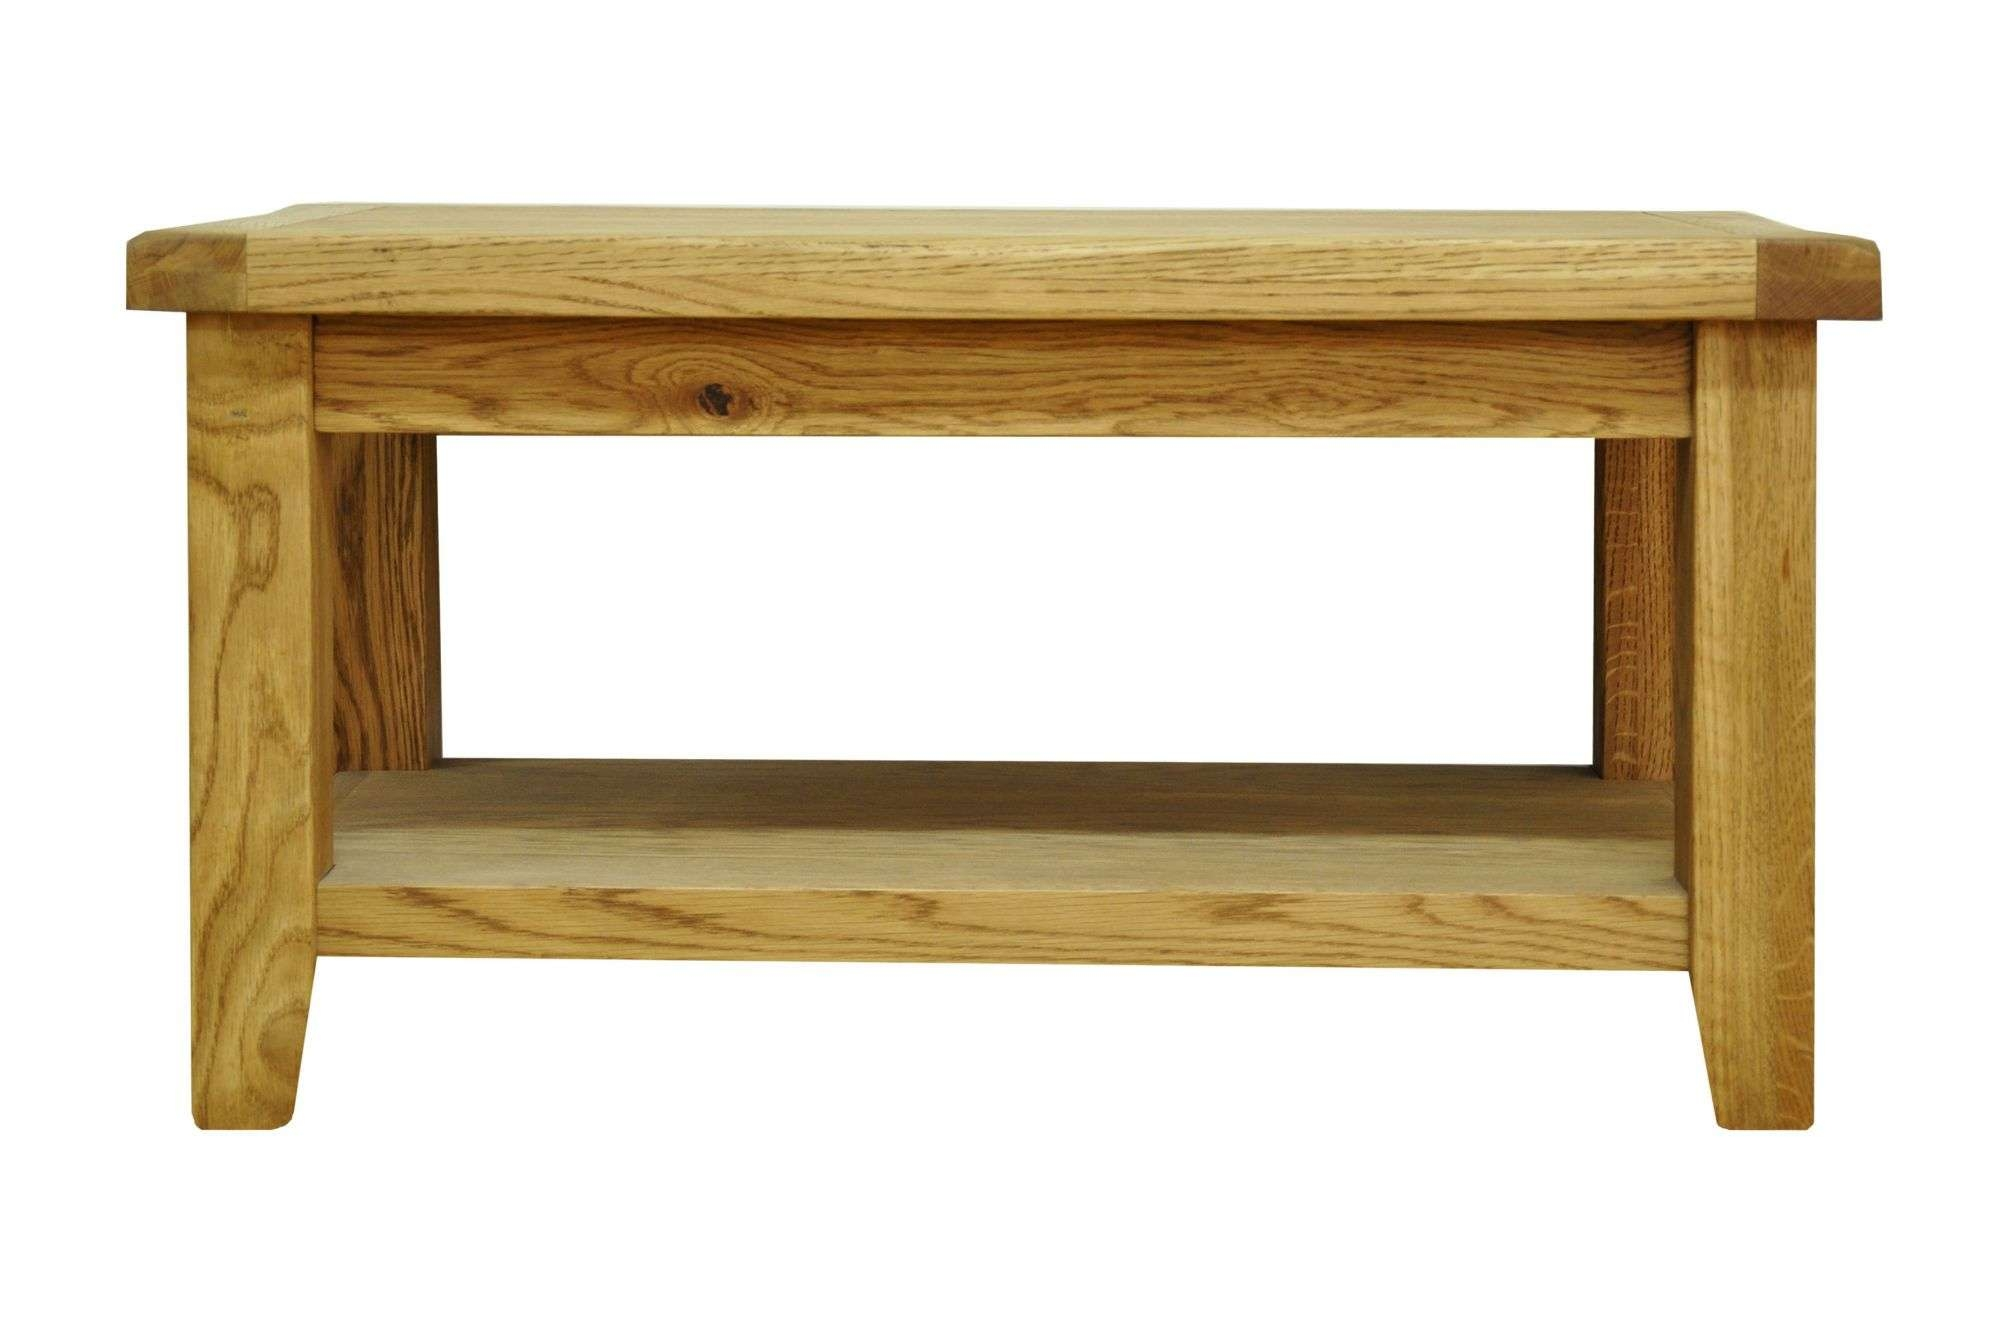 Popular Large Oak Coffee Tables Within Coffee Table : Magnificent Solid Oak Coffee Table Reclaimed Wood (View 10 of 20)